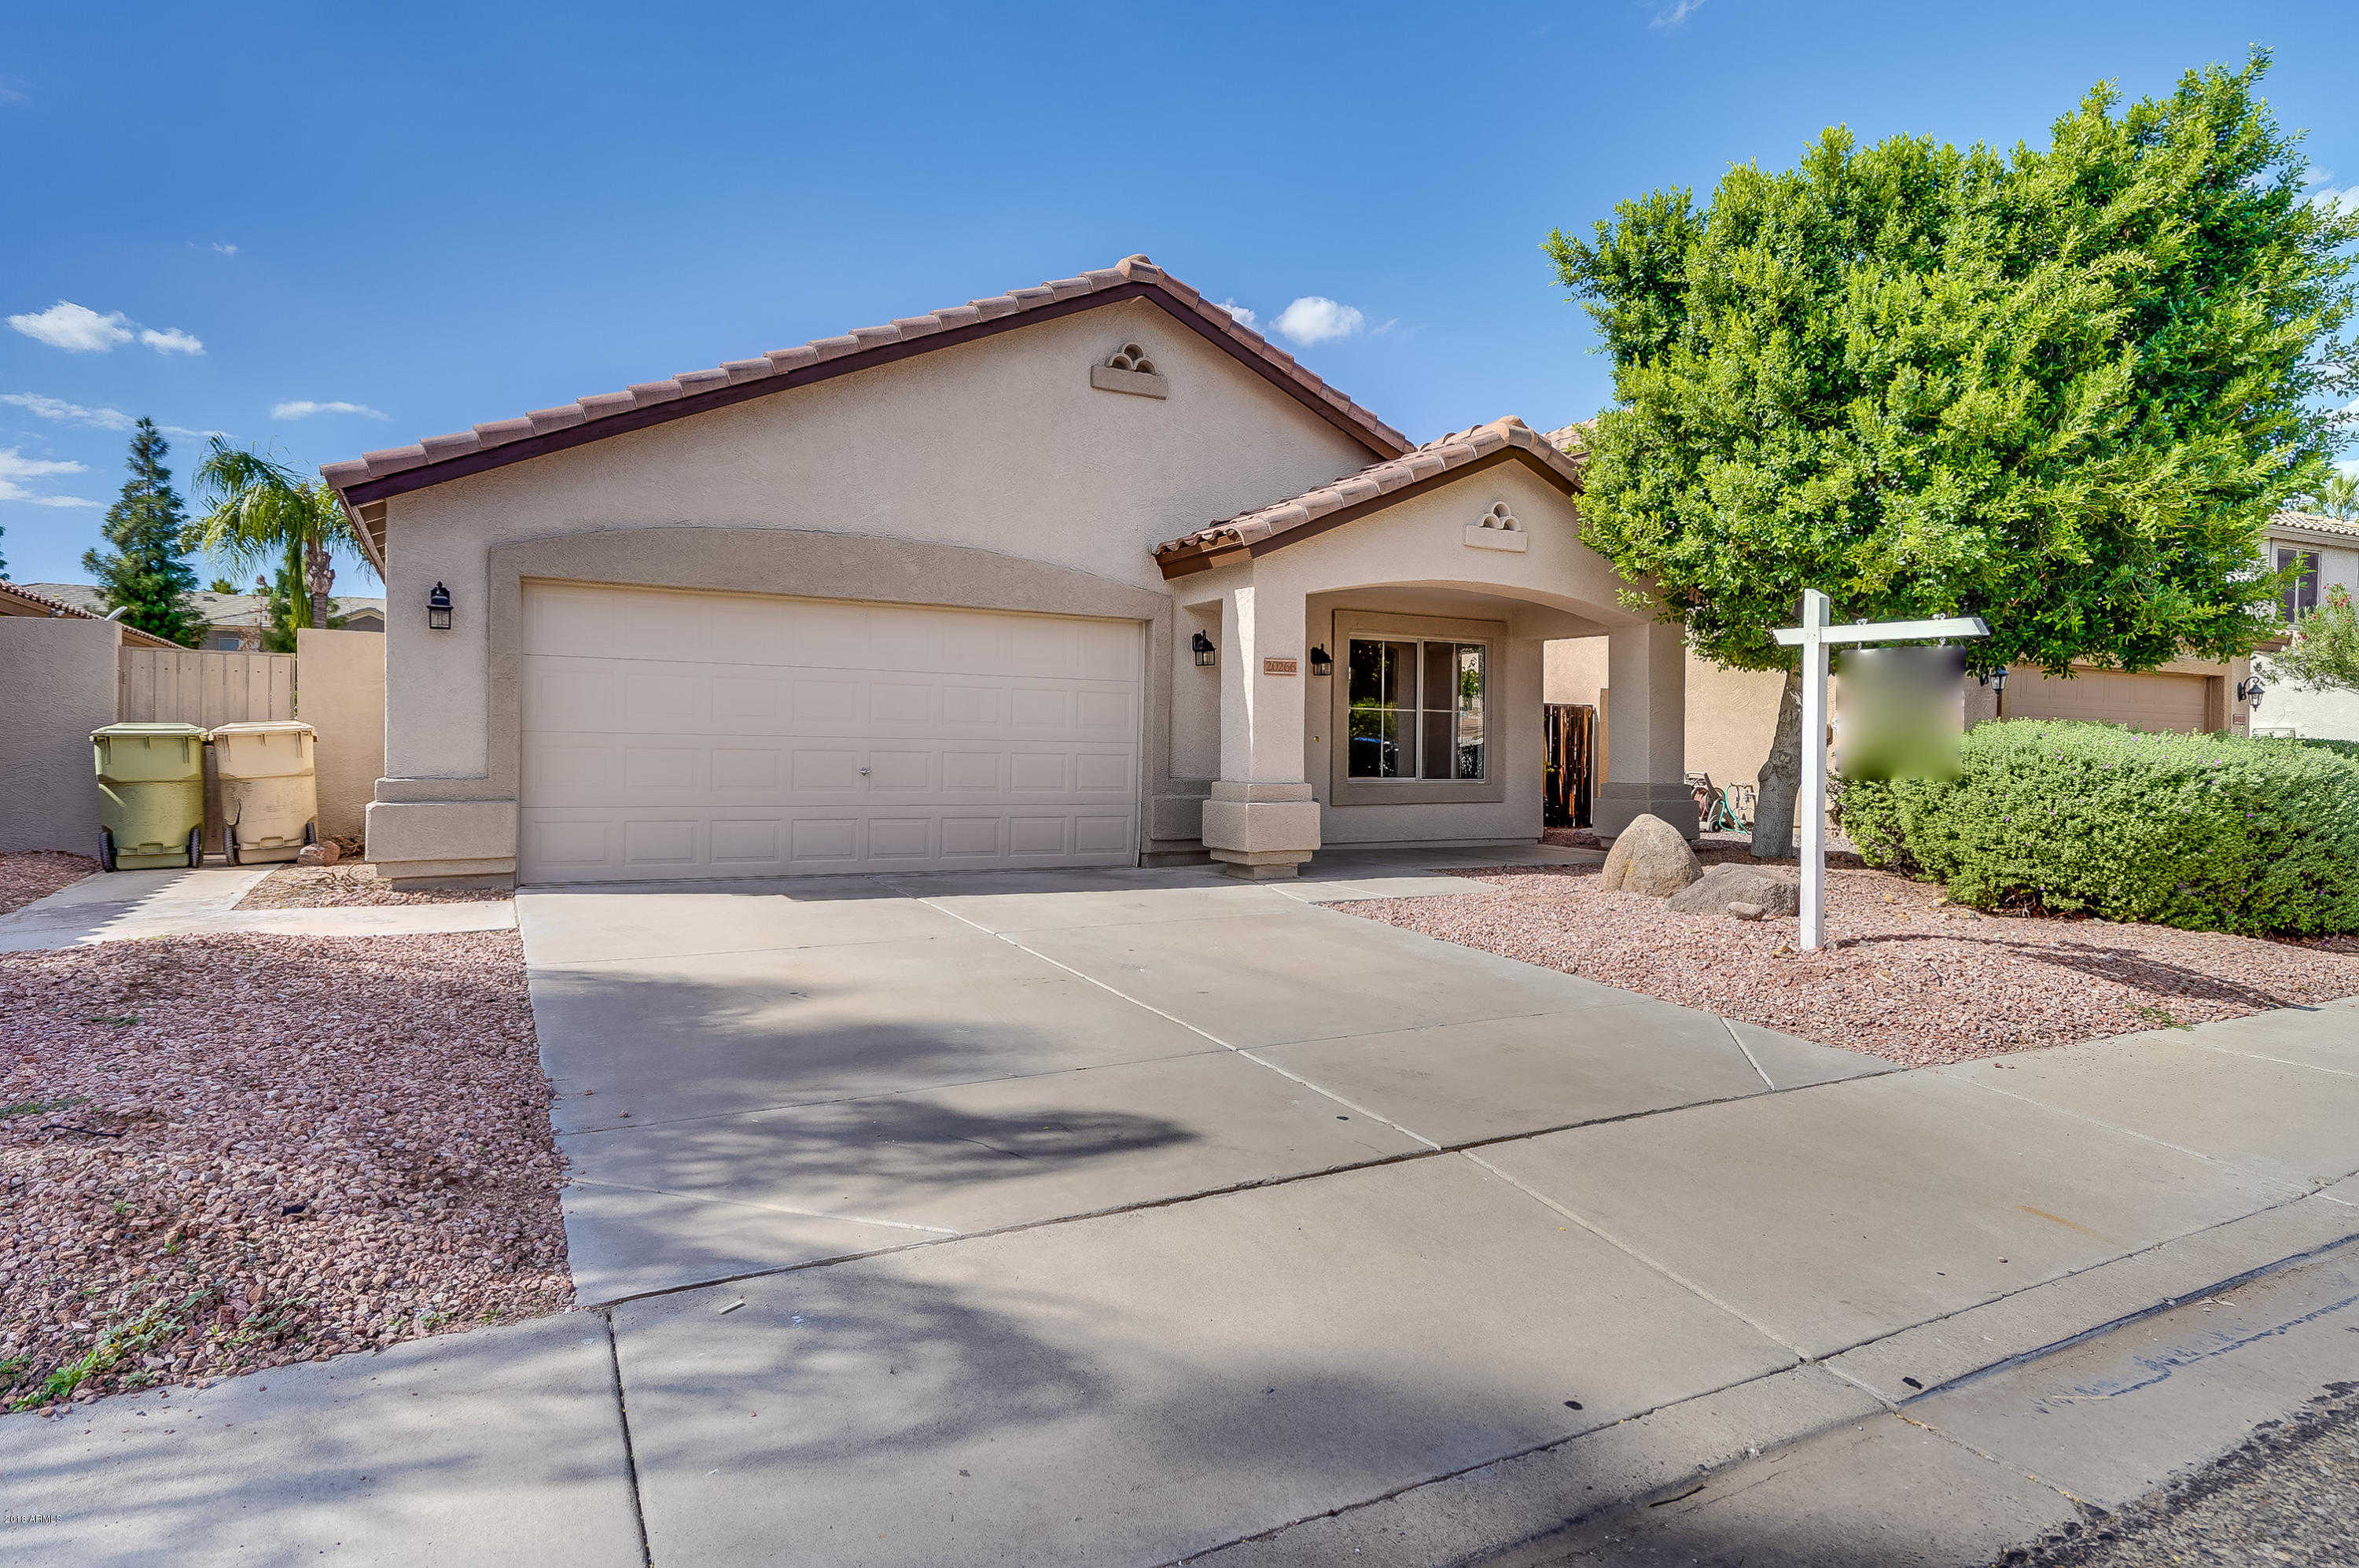 $319,900 - 3Br/2Ba - Home for Sale in Valencia, Glendale